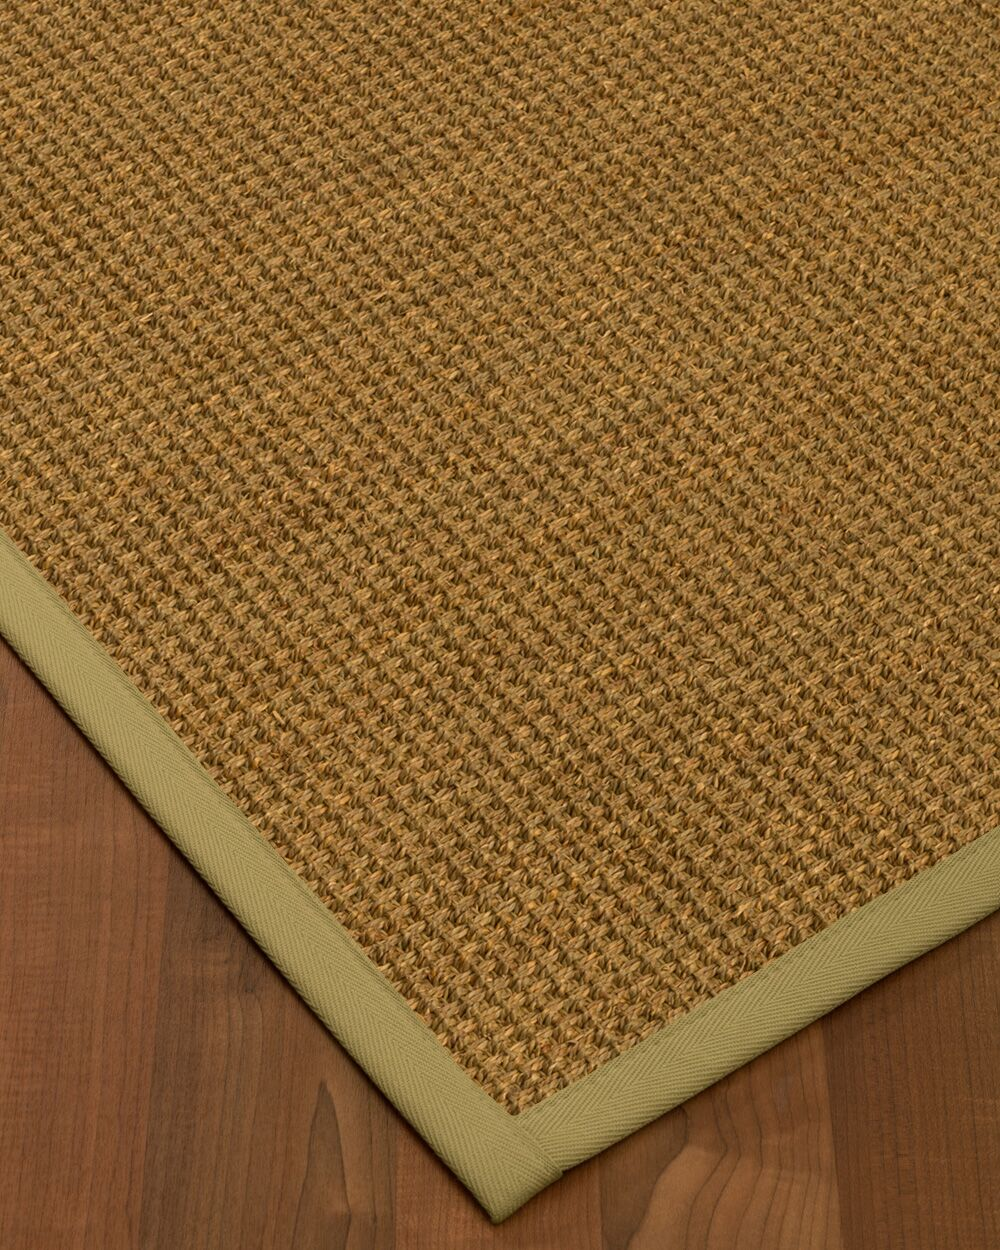 Chavez Border Hand-Woven Beige/Natural Area Rug Rug Size: Rectangle 6' x 9', Rug Pad Included: Yes